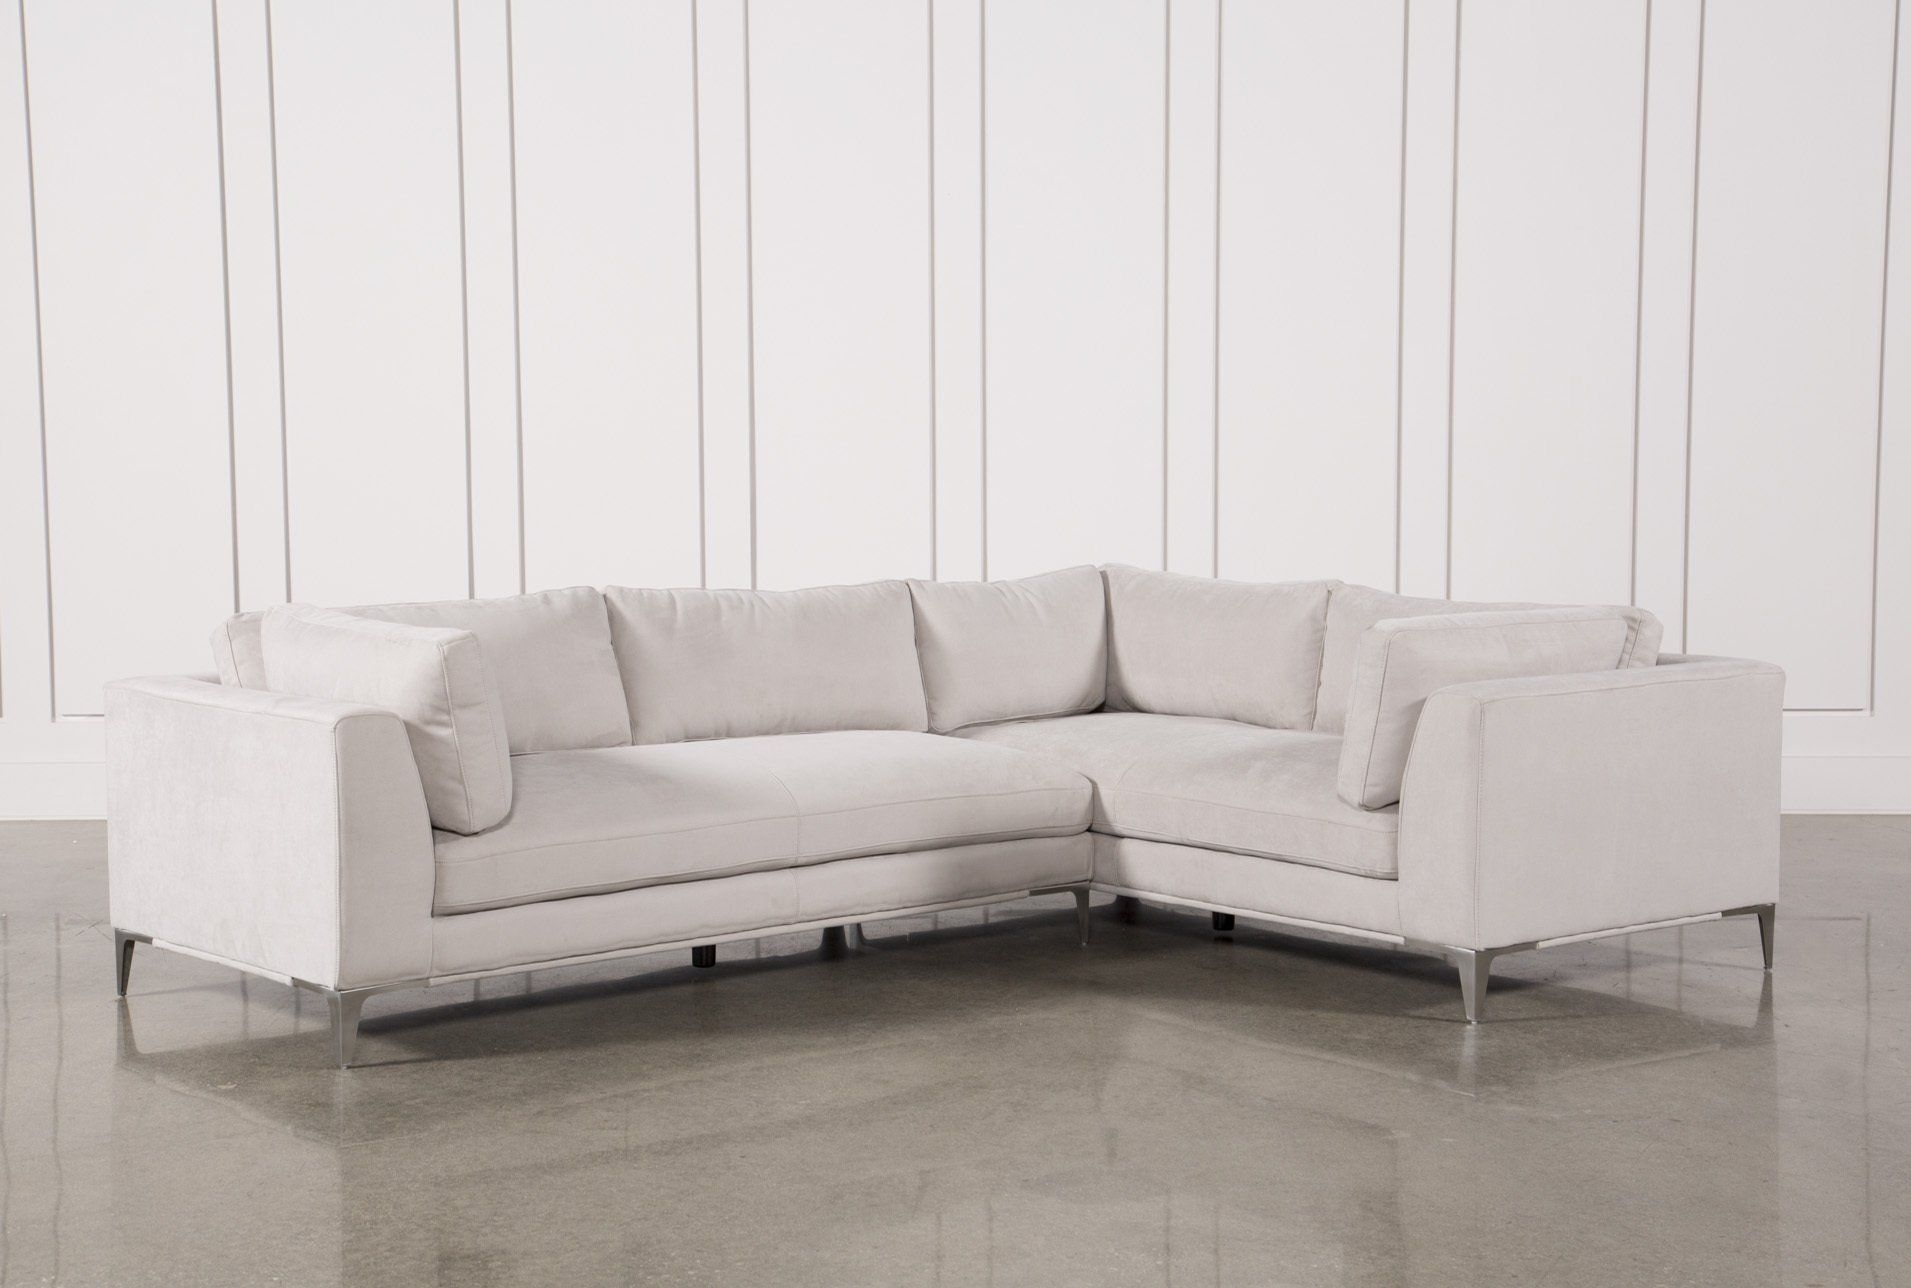 Cosmos Grey 2 Piece Sectional W/laf Chaise | Quilling | Pinterest Throughout Cosmos Grey 2 Piece Sectionals With Laf Chaise (View 6 of 25)